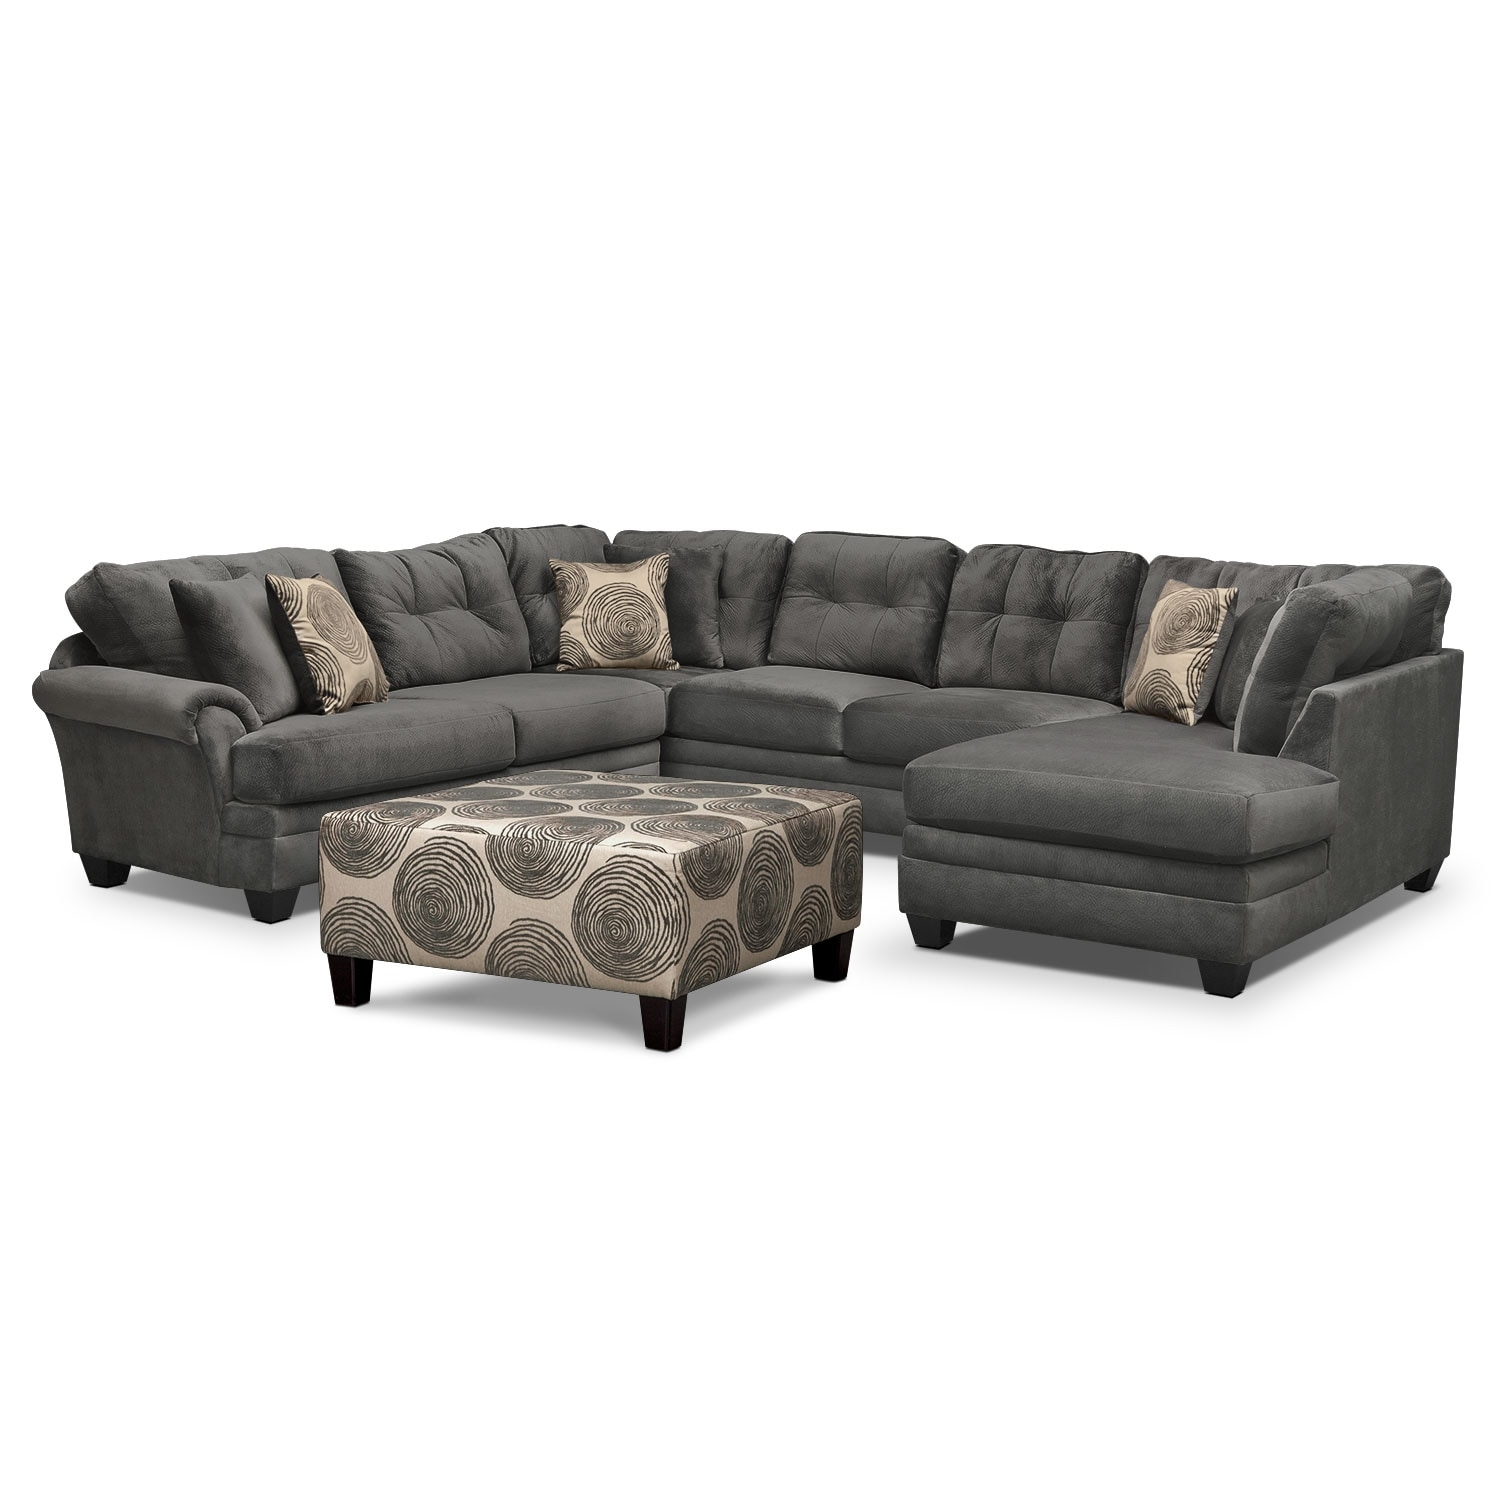 Cordelle 3 Piece Sectional And Cocktail Ottoman Set   Gray Part 35